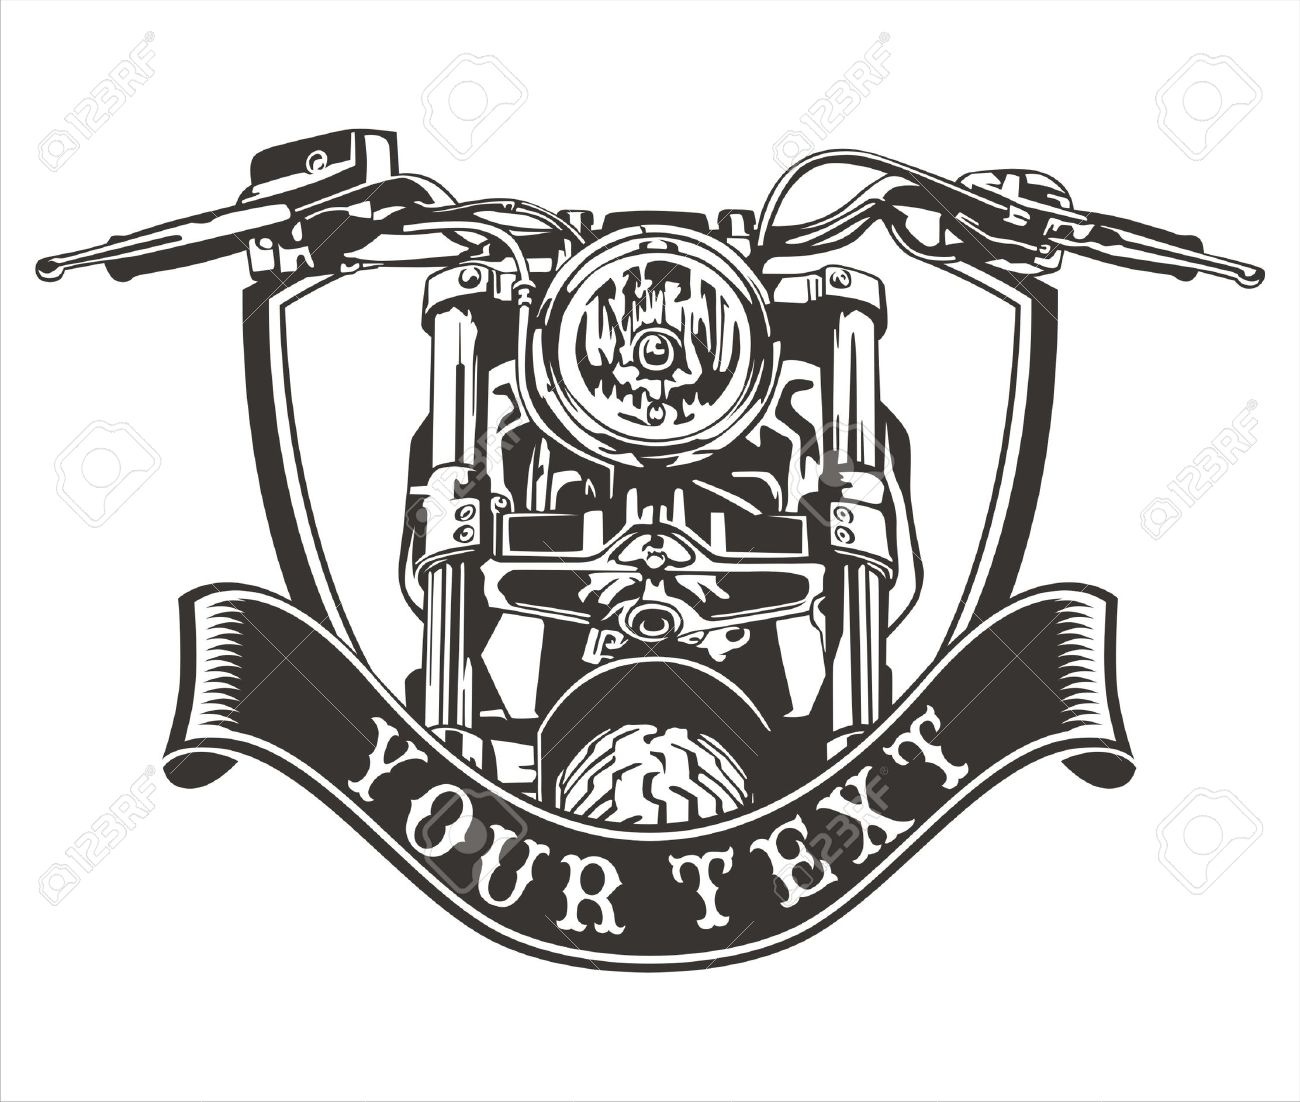 vector design vintage motorcycle with a ribbon below - 52523530